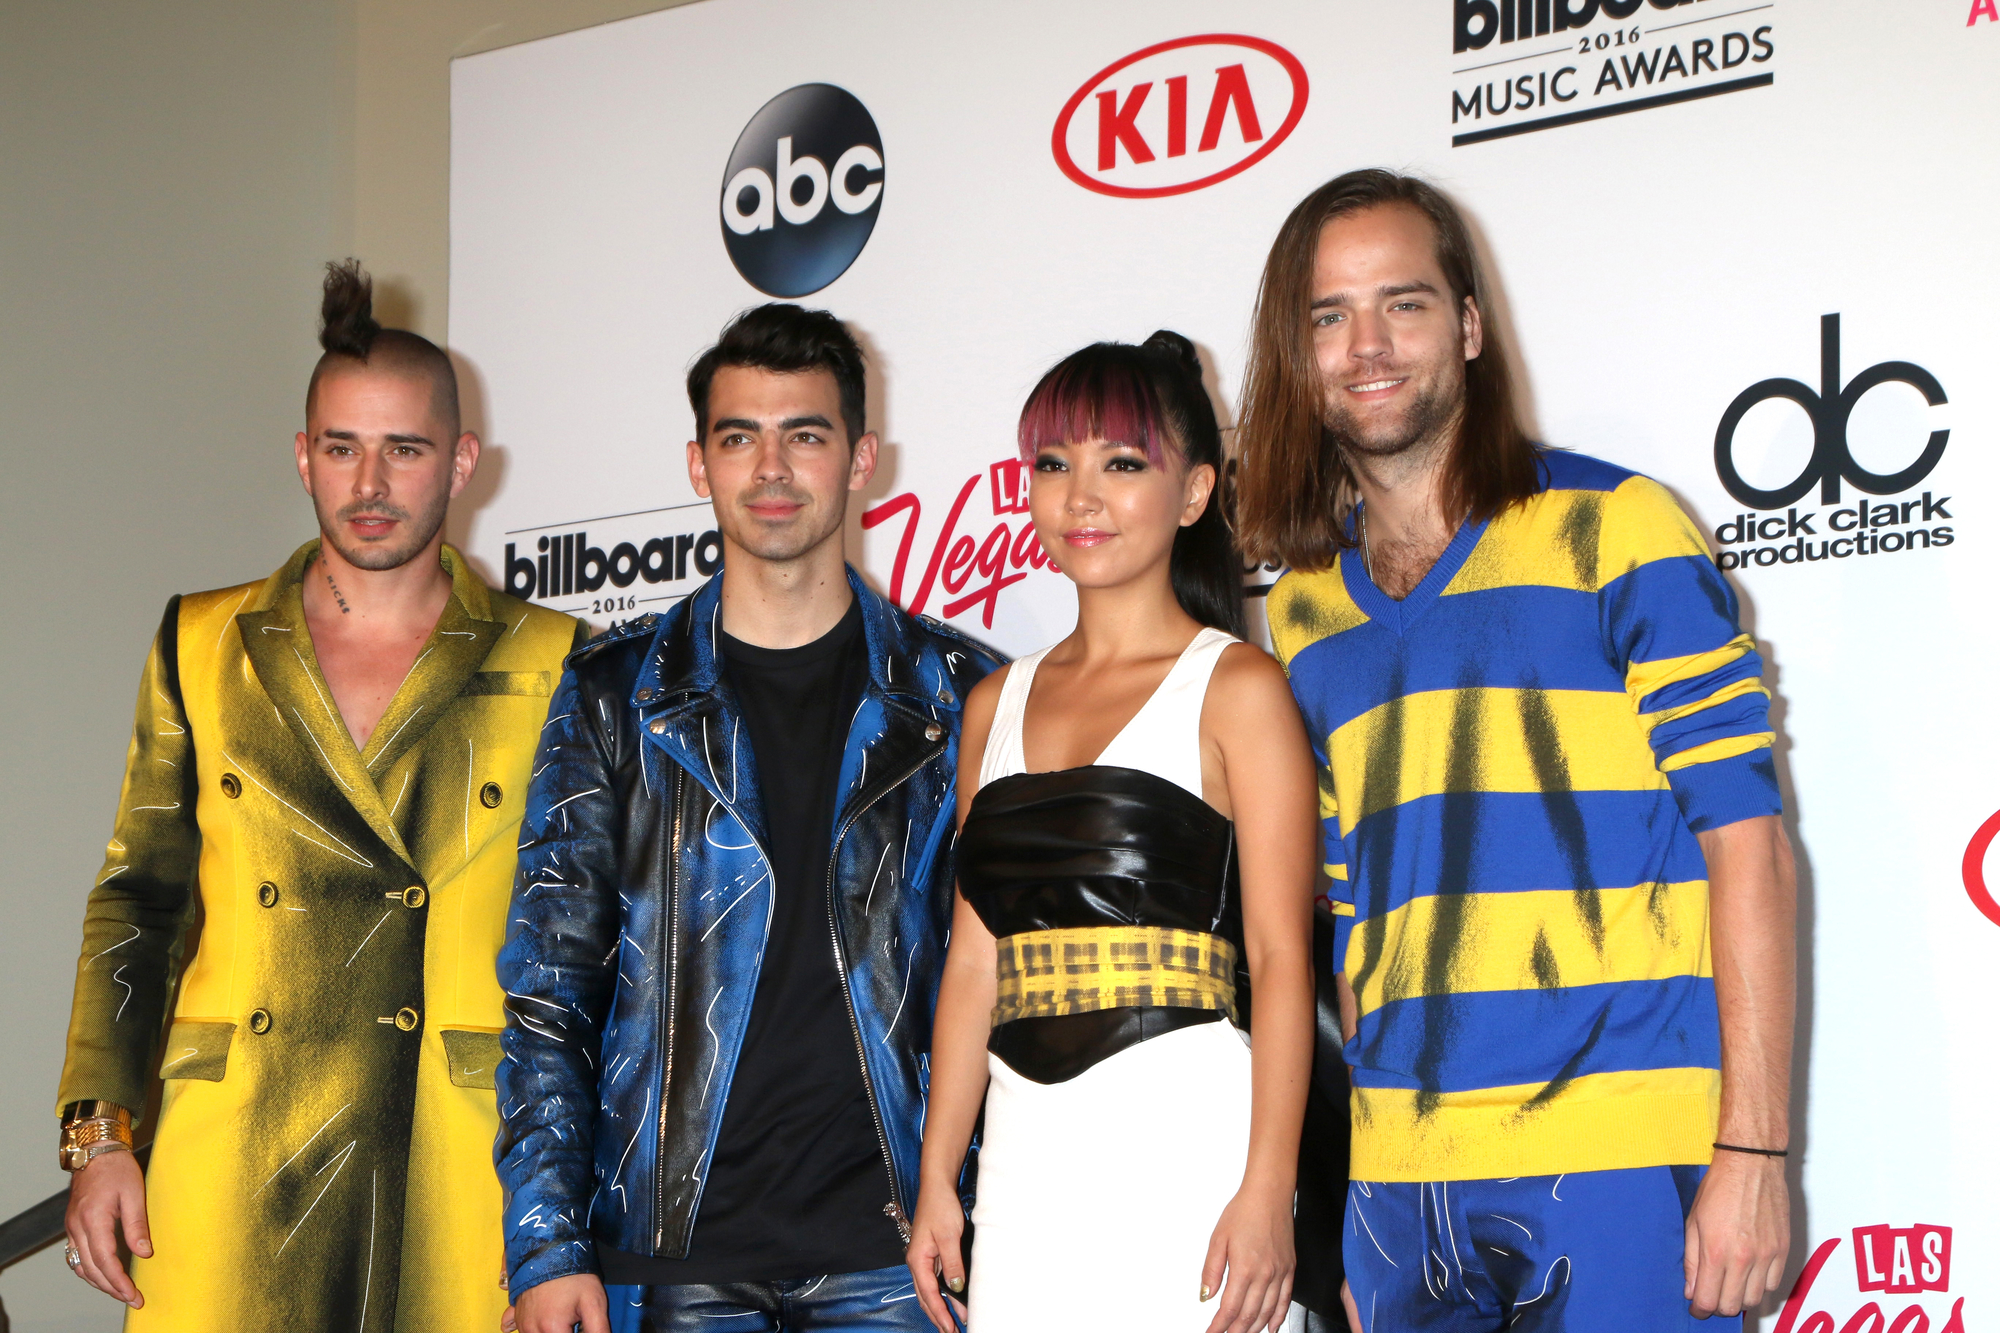 DNCE biography